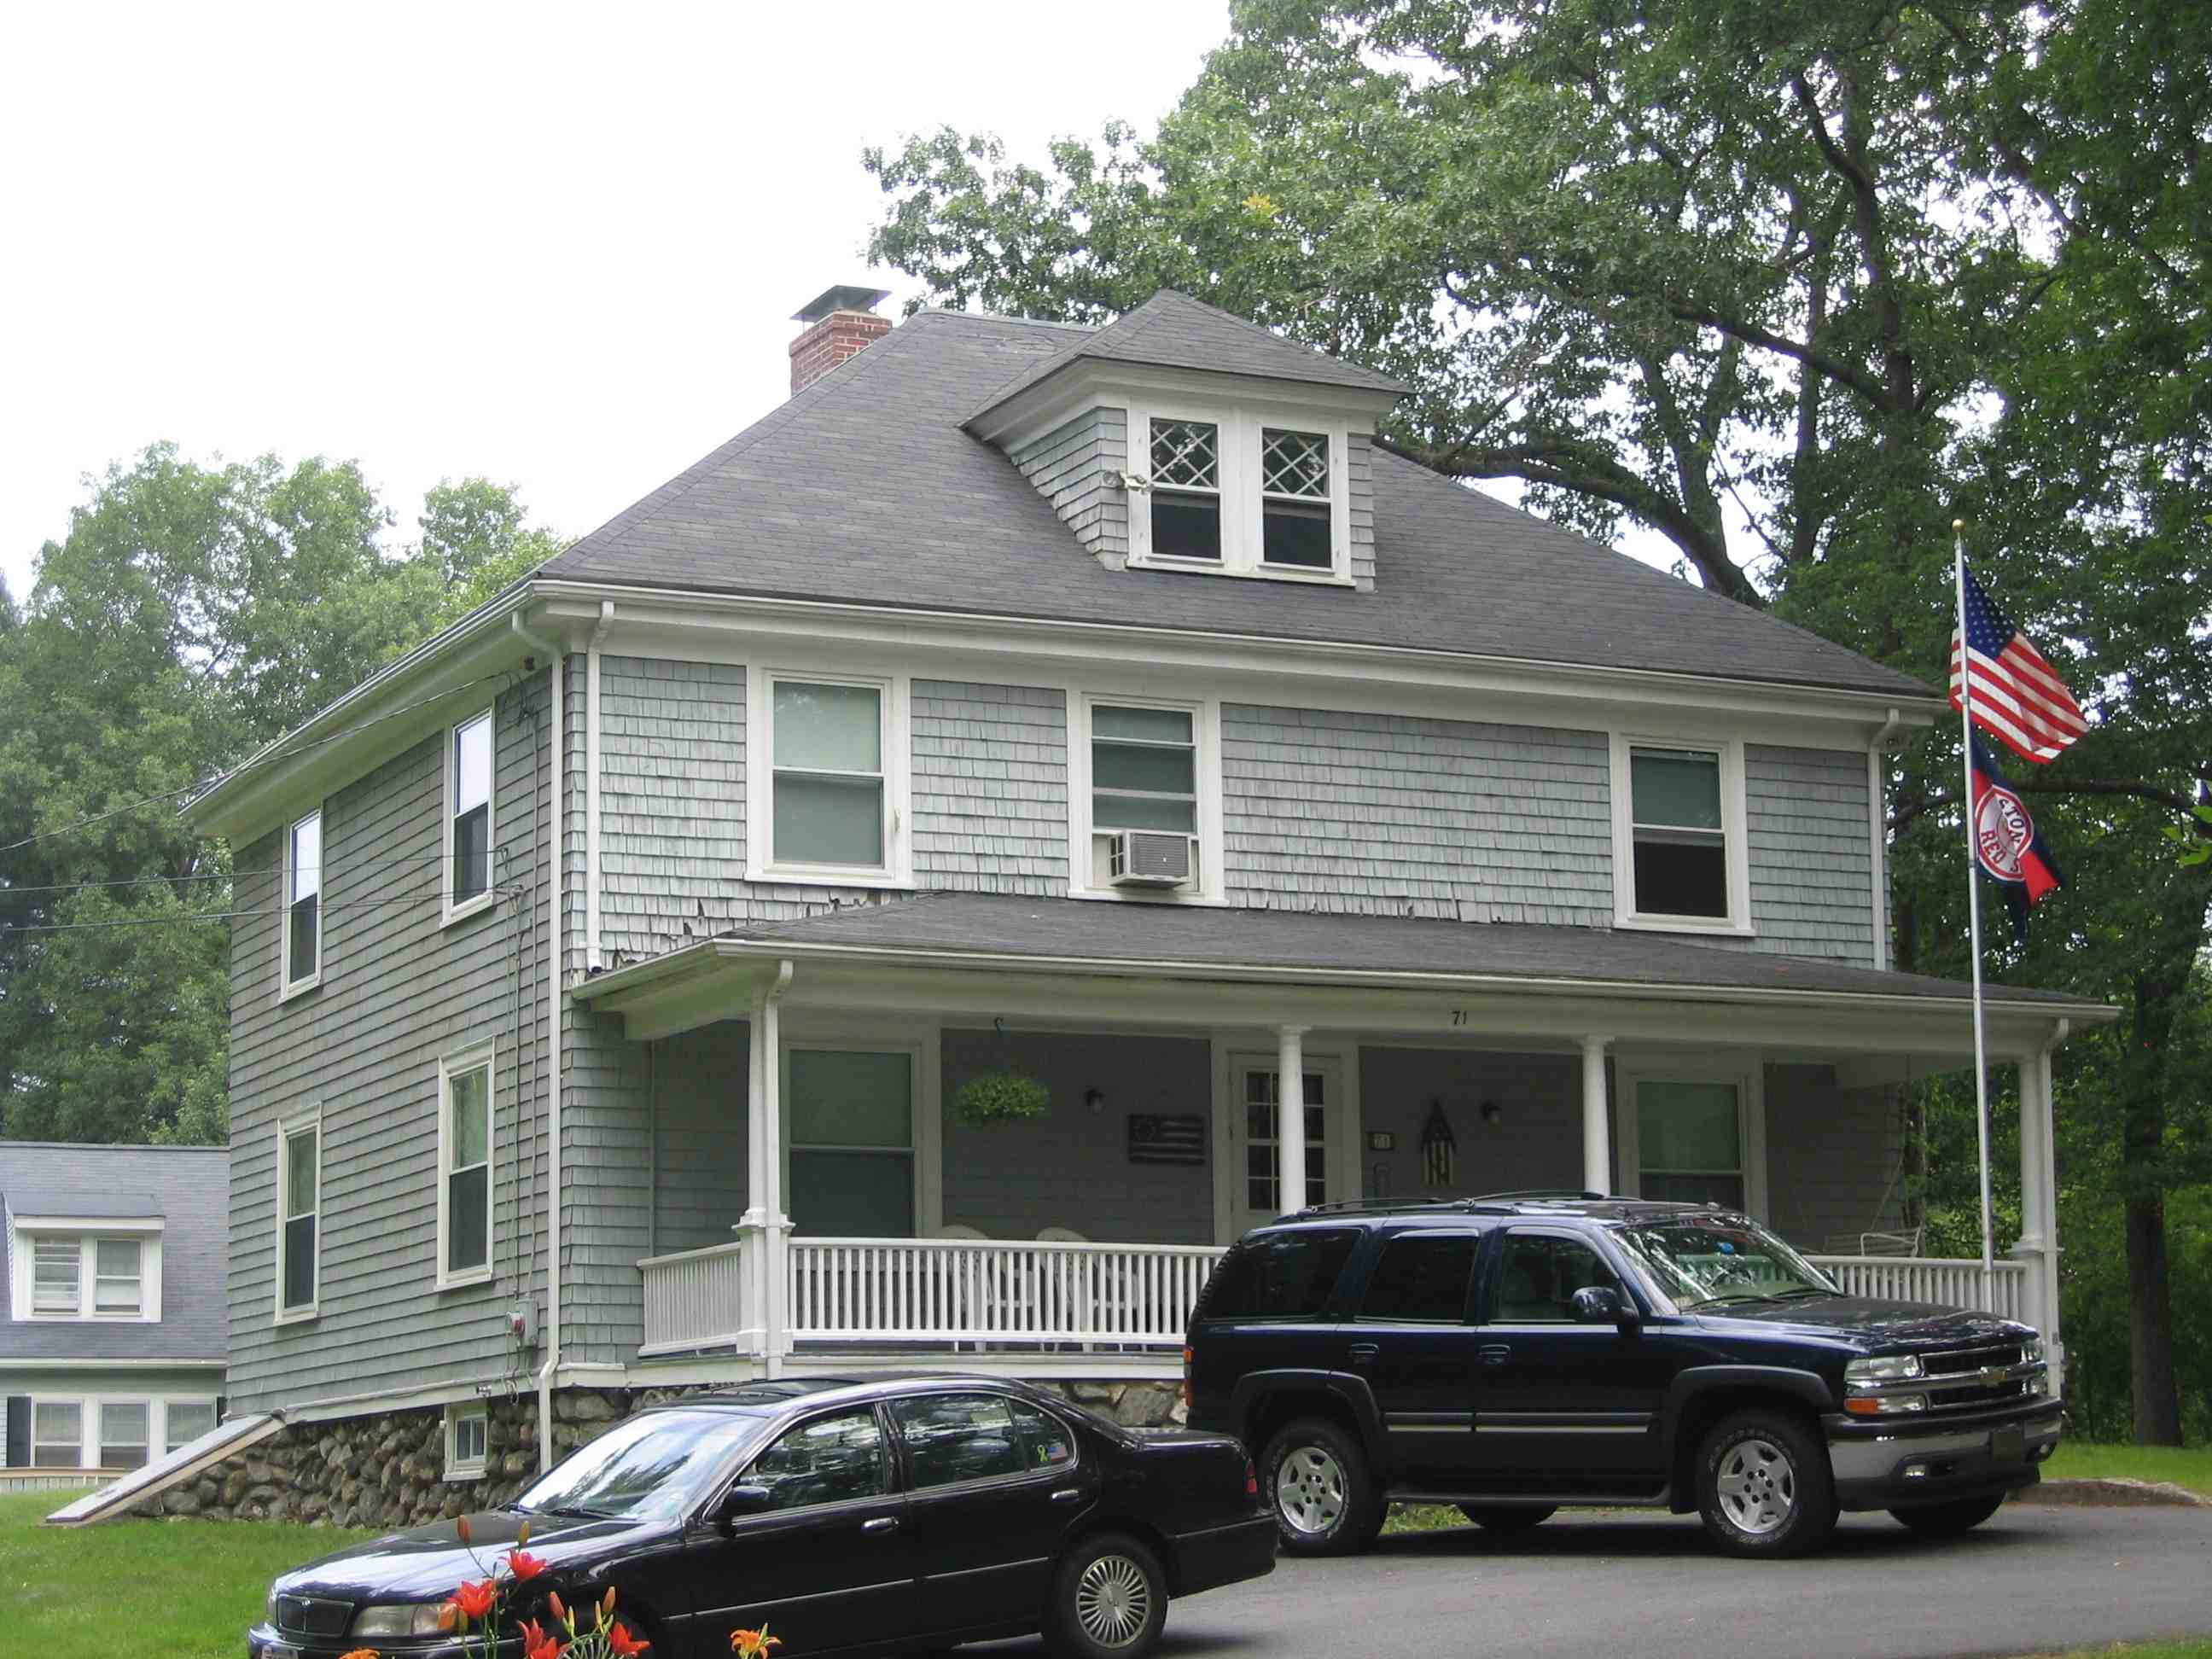 74 Warren Avenue was the home of Percy Warren